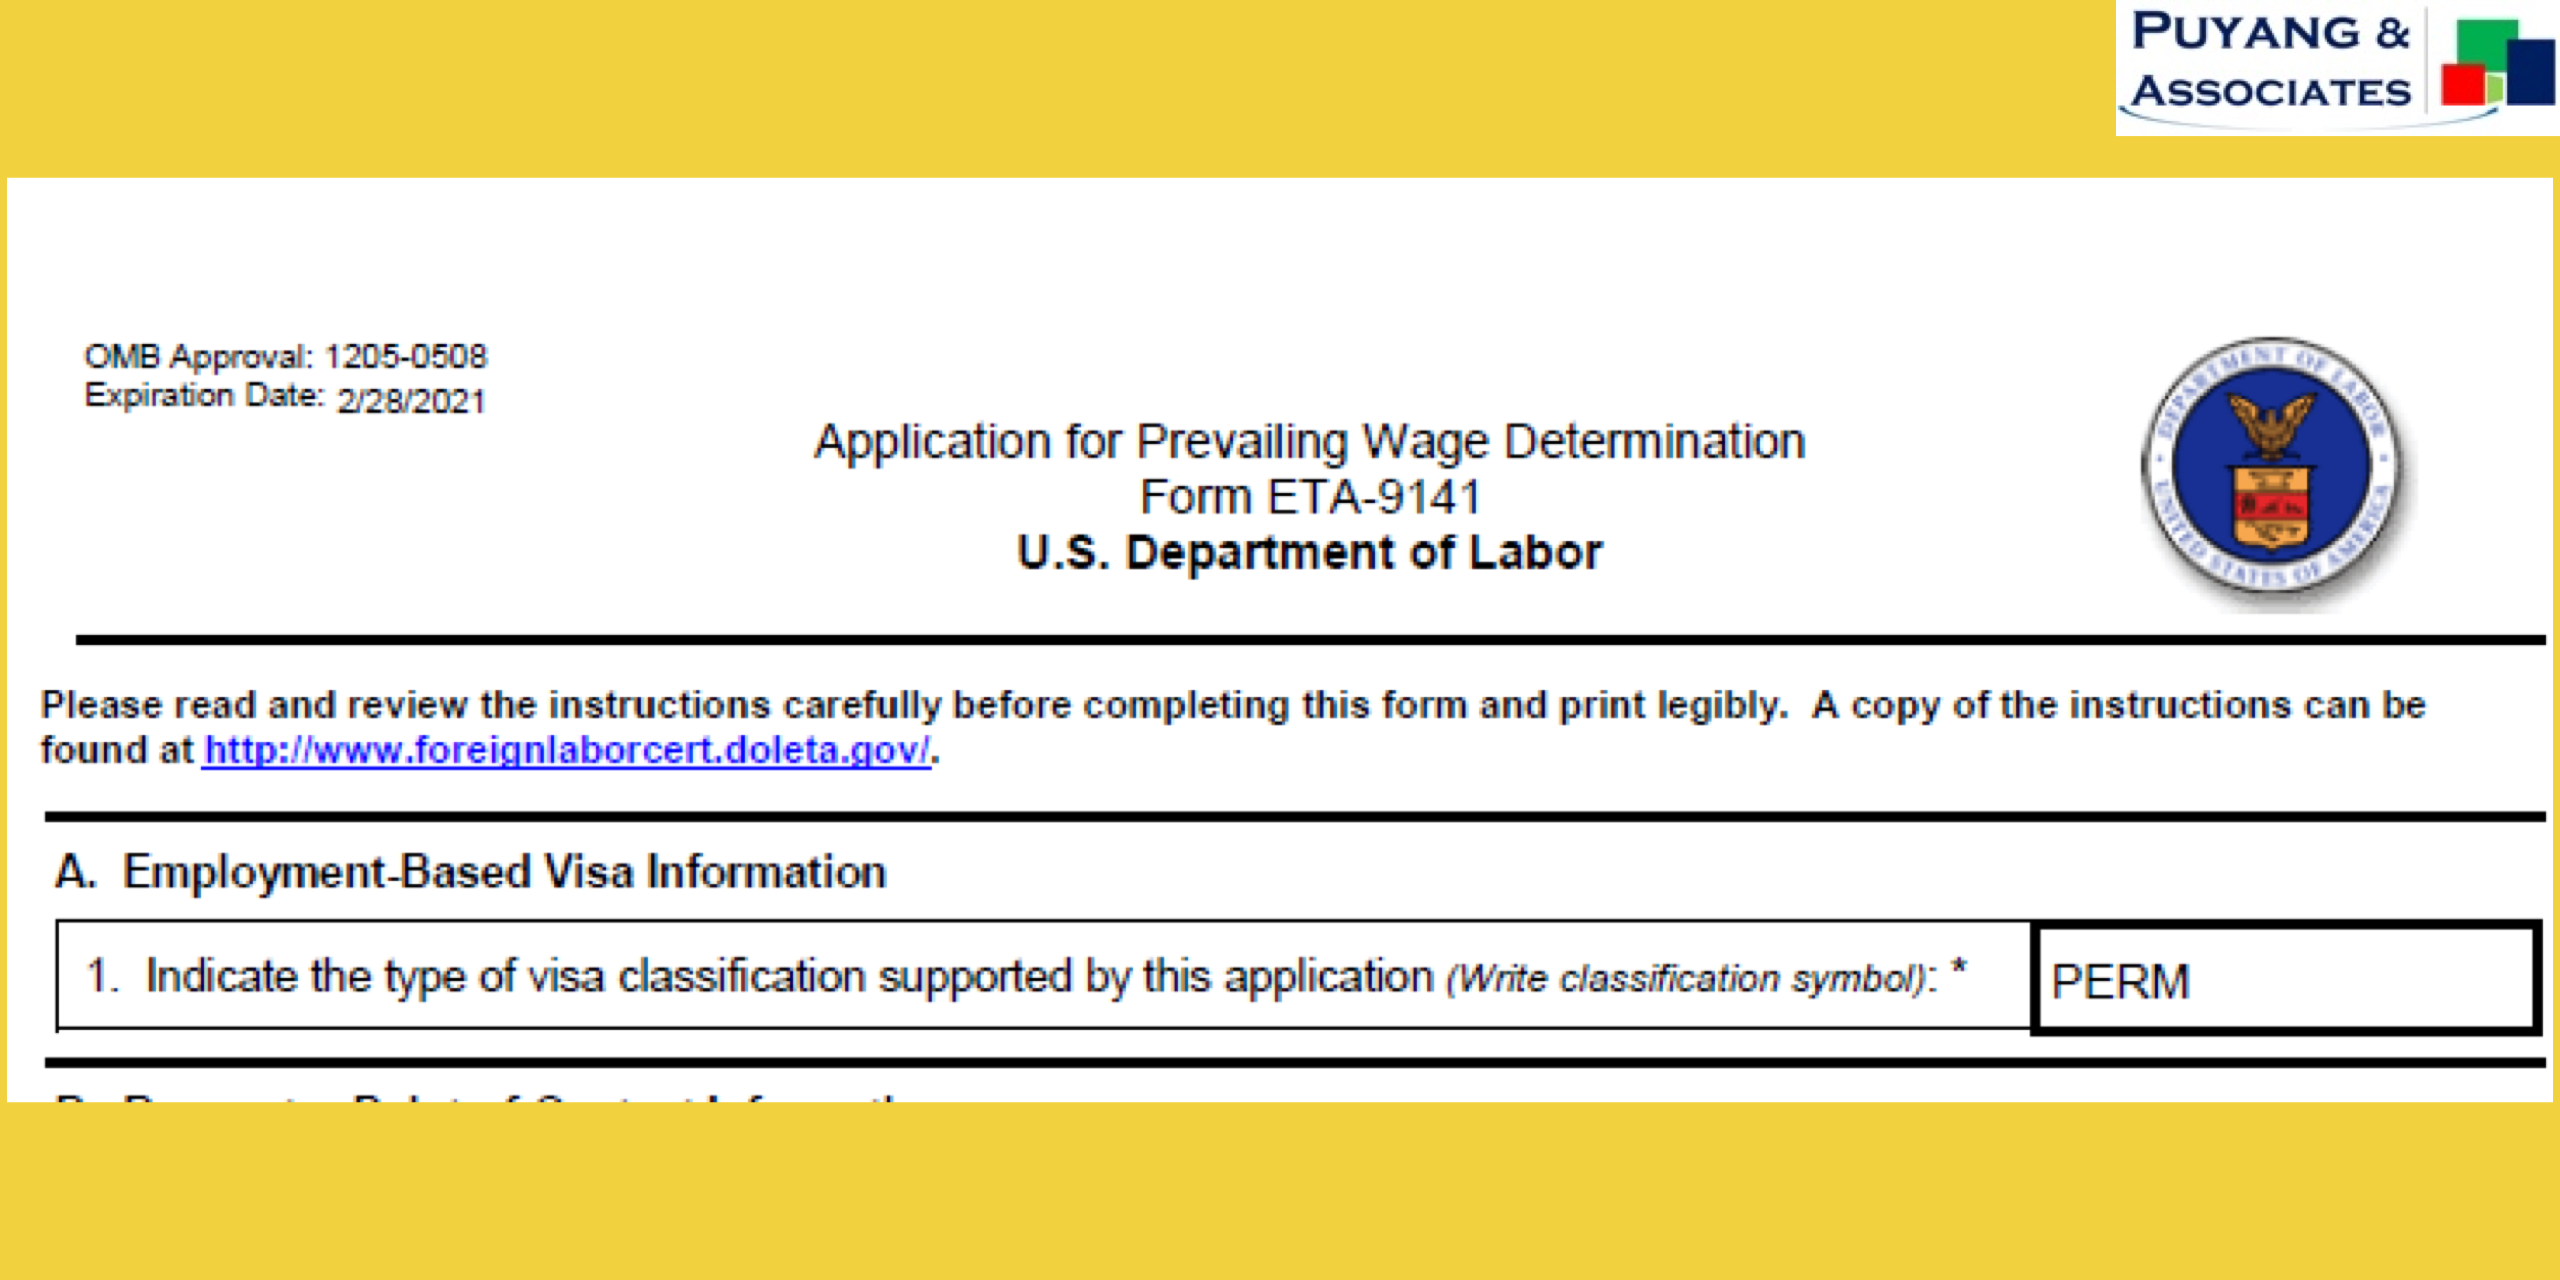 New Prevailing Wage Request Form and Other Updates from DOL